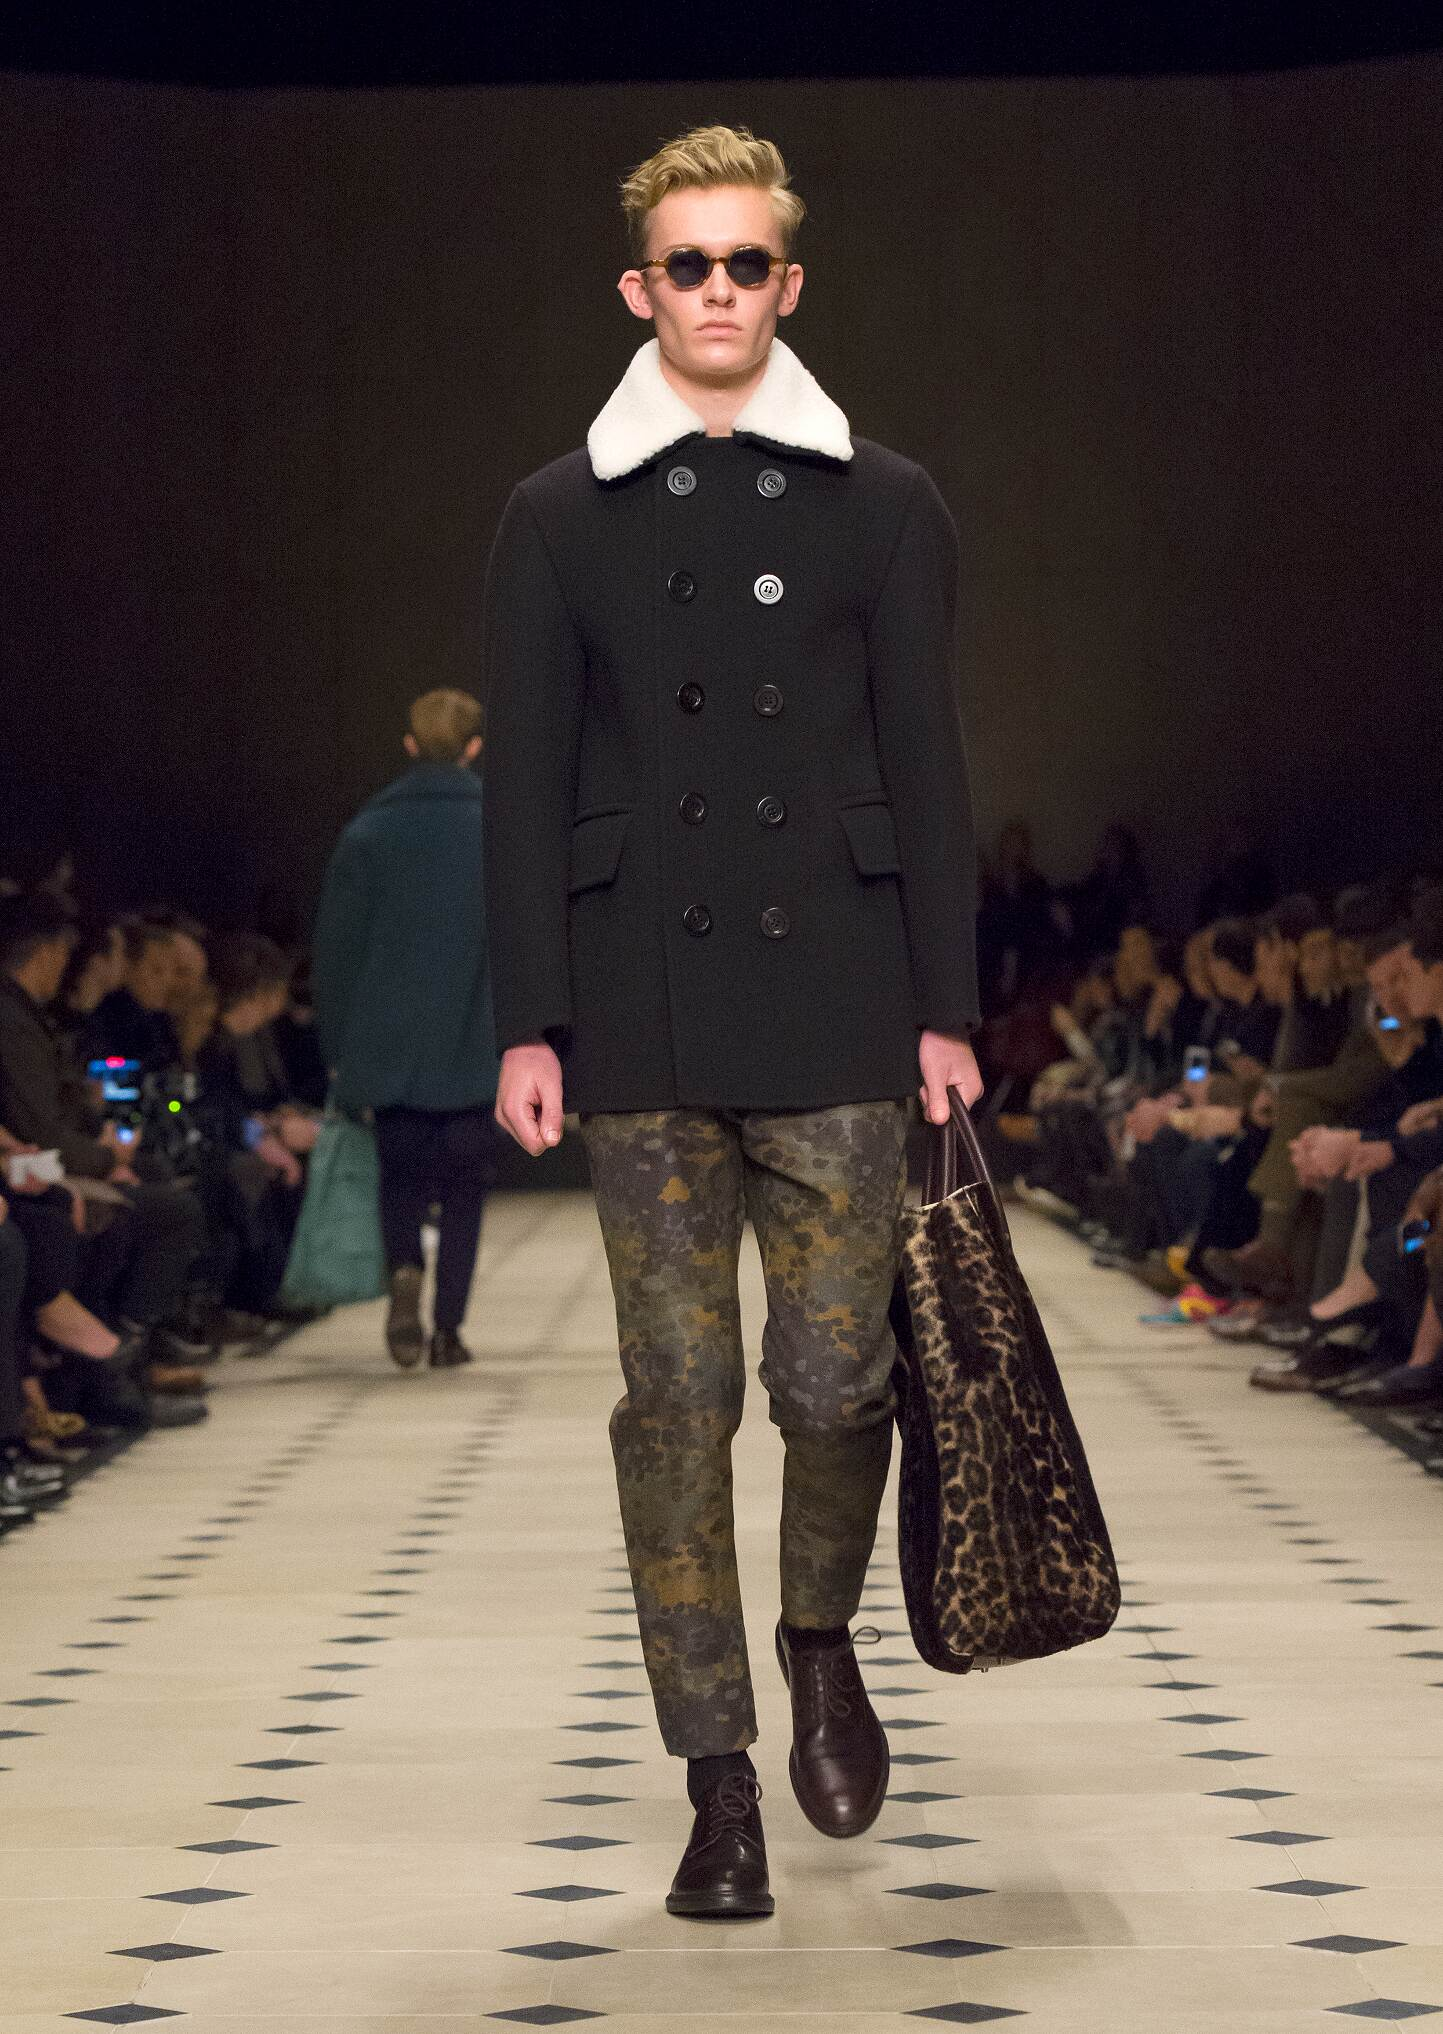 Burberry Prorsum Winter 2015 Catwalk